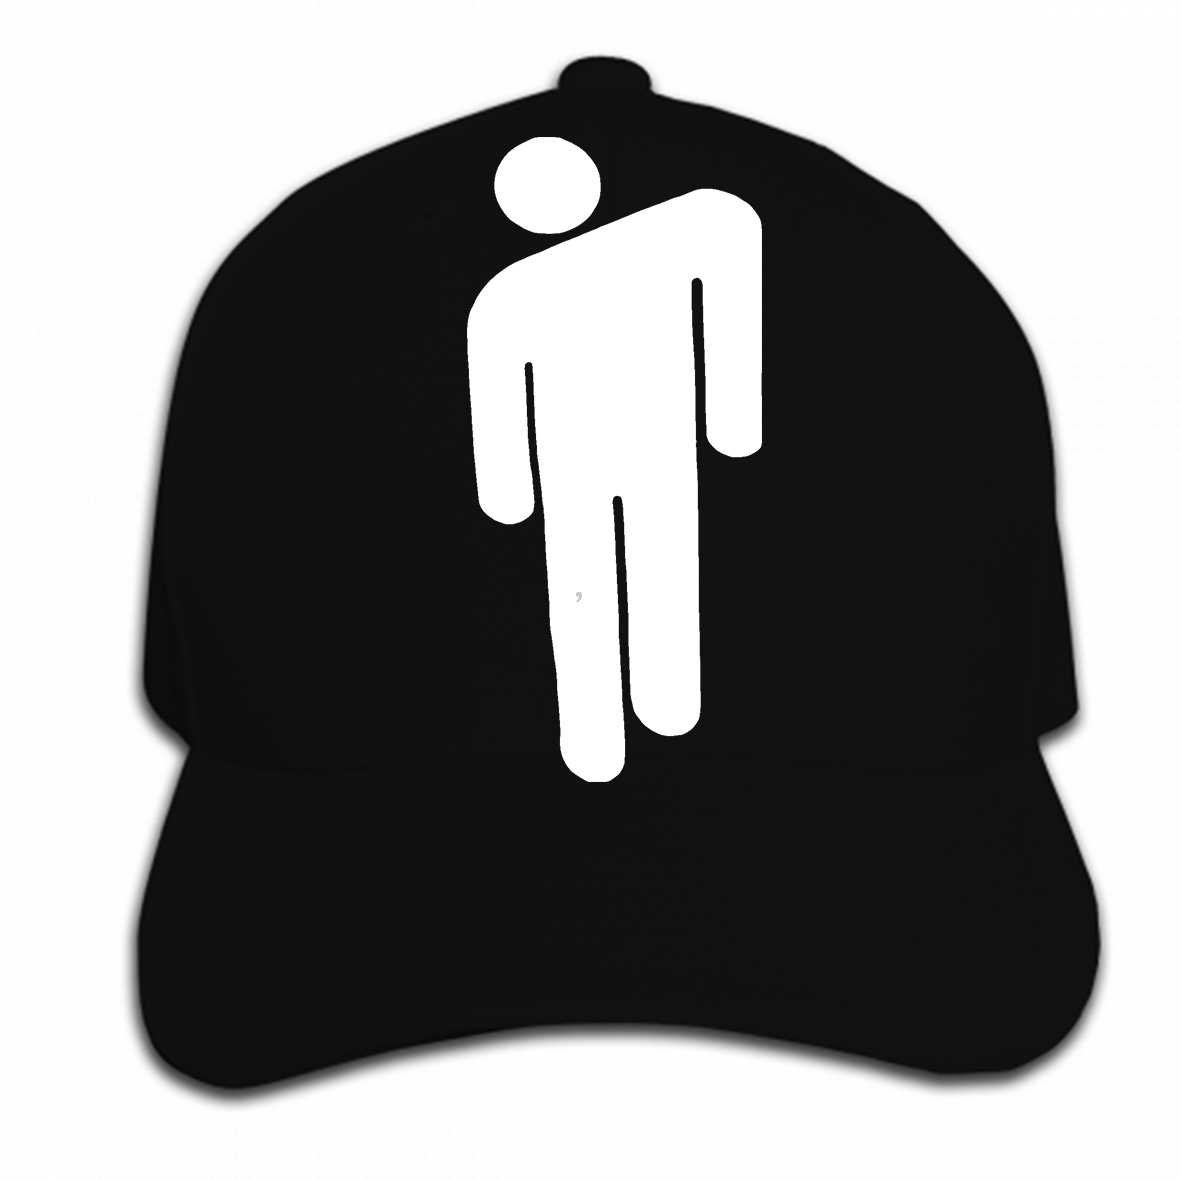 f09d2323 Detail Feedback Questions about Print Custom Baseball Cap Billie Eilish 1  By 1 Tour 2019 Hat Peaked cap on Aliexpress.com   alibaba group